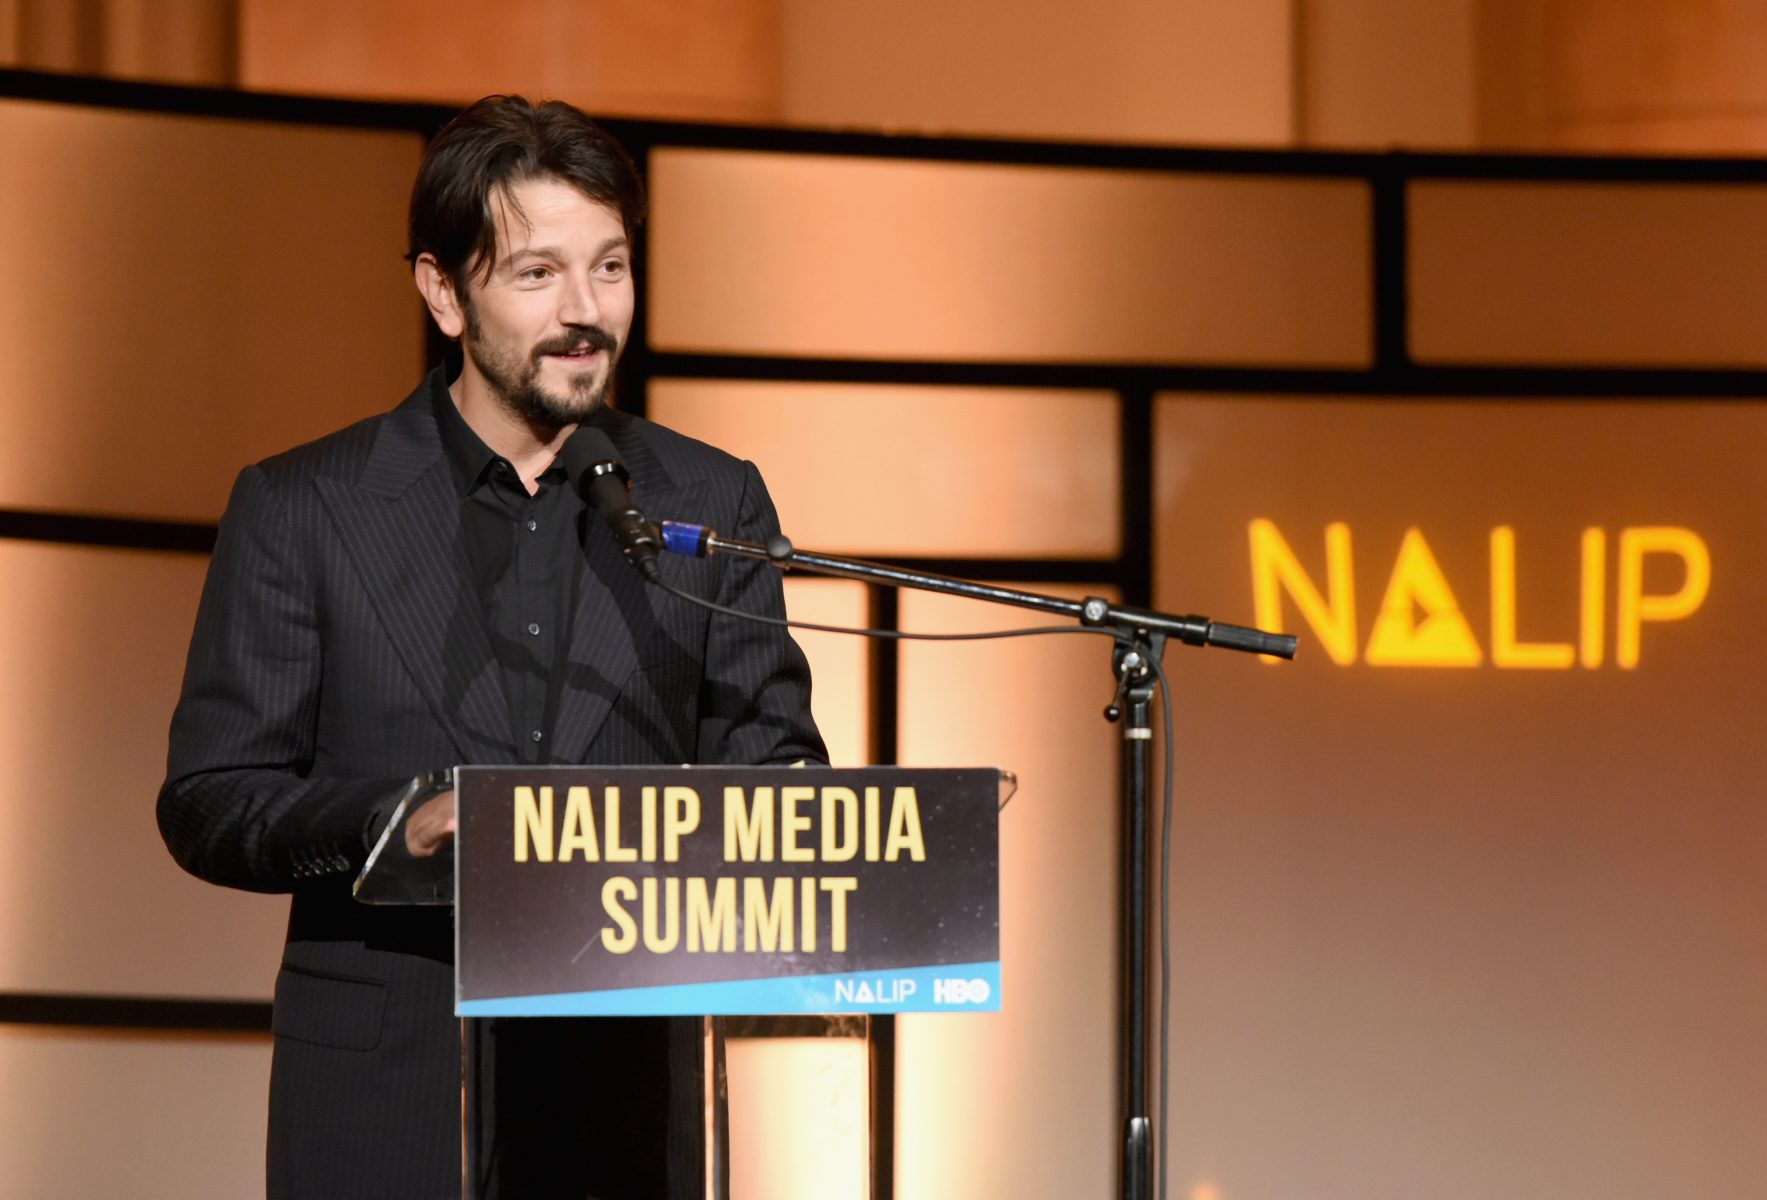 """Diego Luna on Trump's Family Separations: """"What We Have Seen Is Nothing Short of Torture"""""""